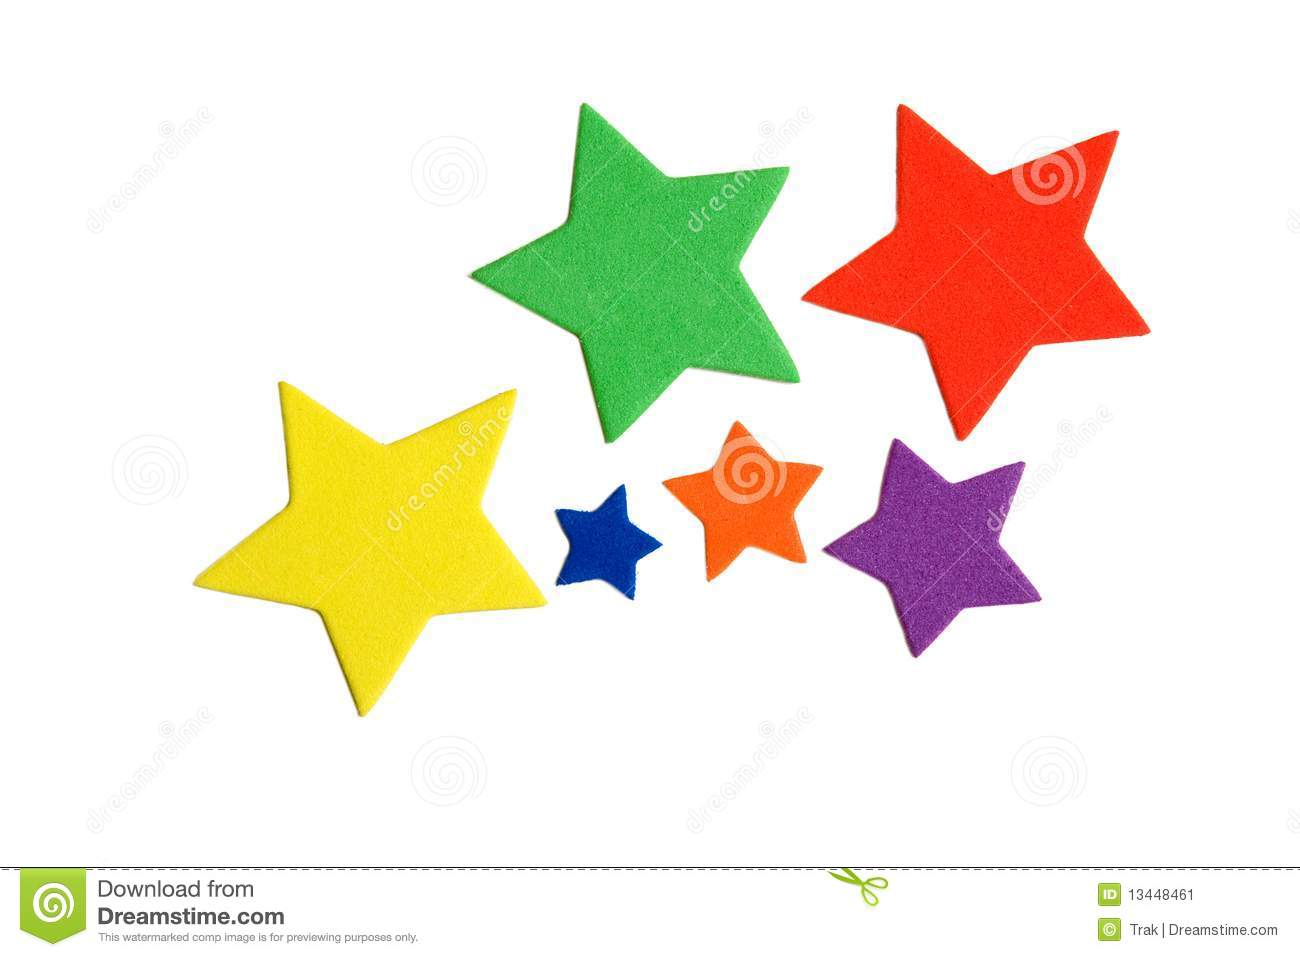 Color Stars Stock Image. Image Of Colored, Colorful, Star